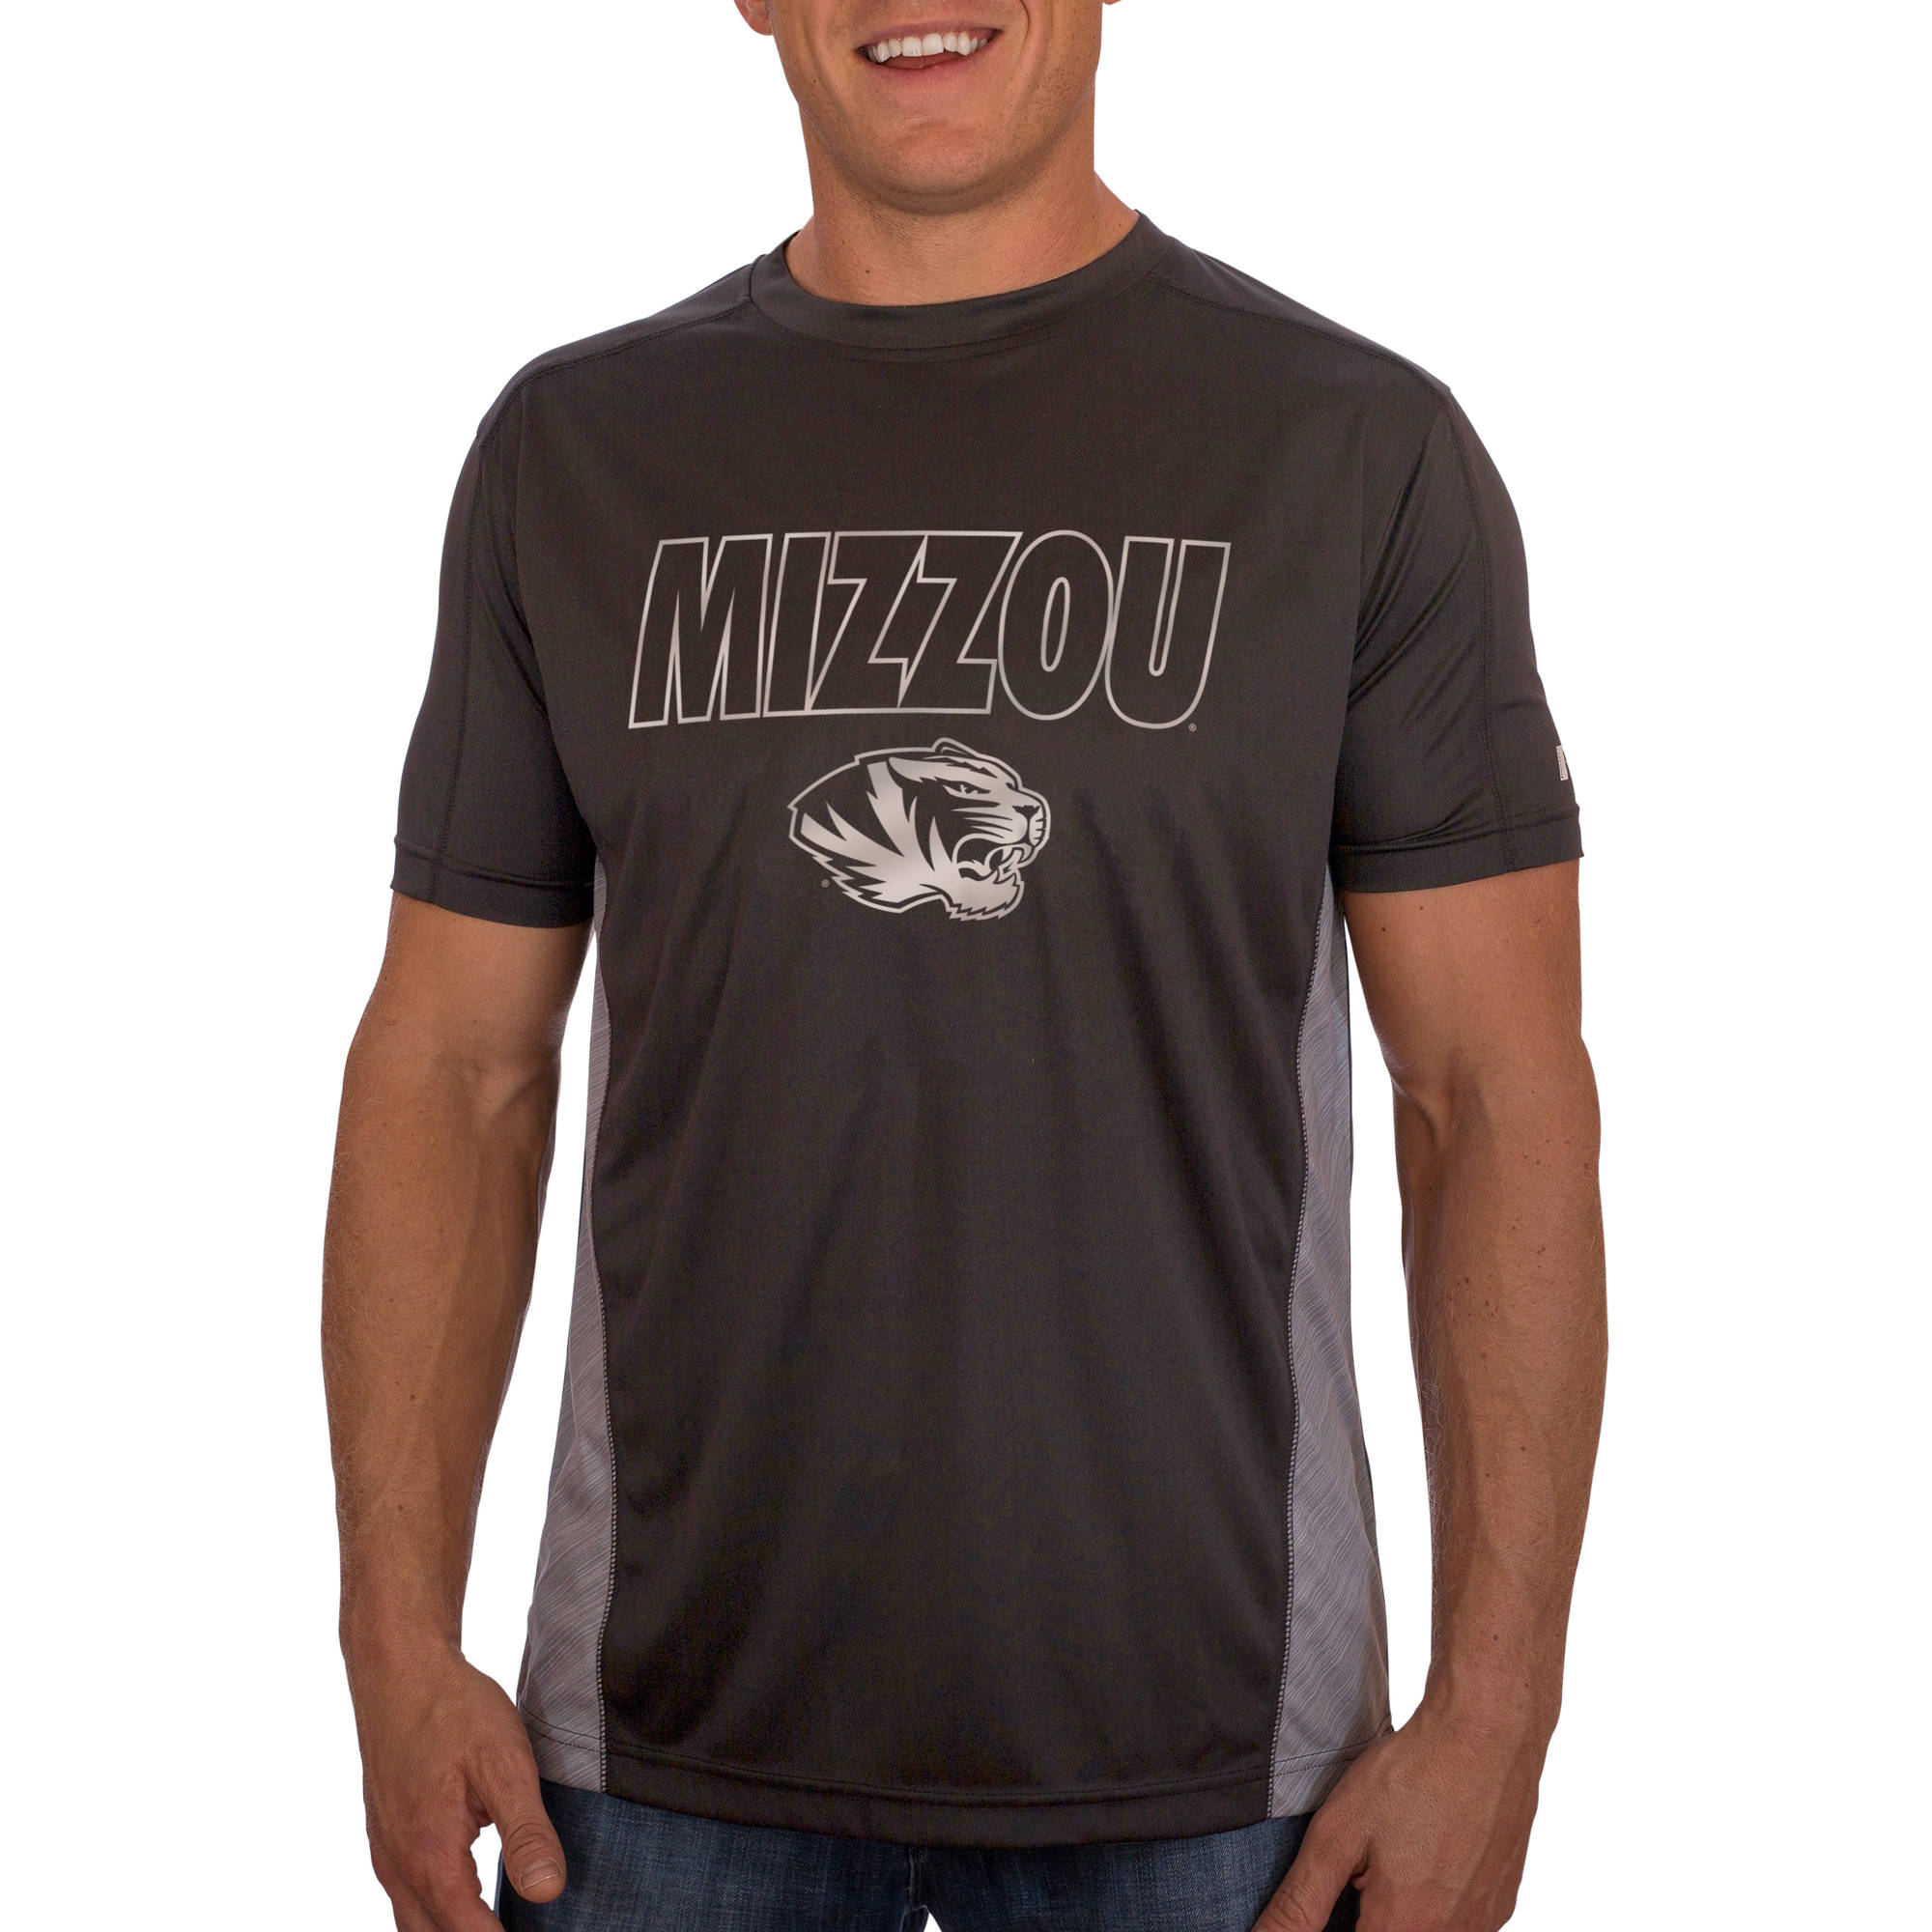 Russell NCAA Missouri Tigers Men's Athletic Fit Black / Storm Gray Impact Tee